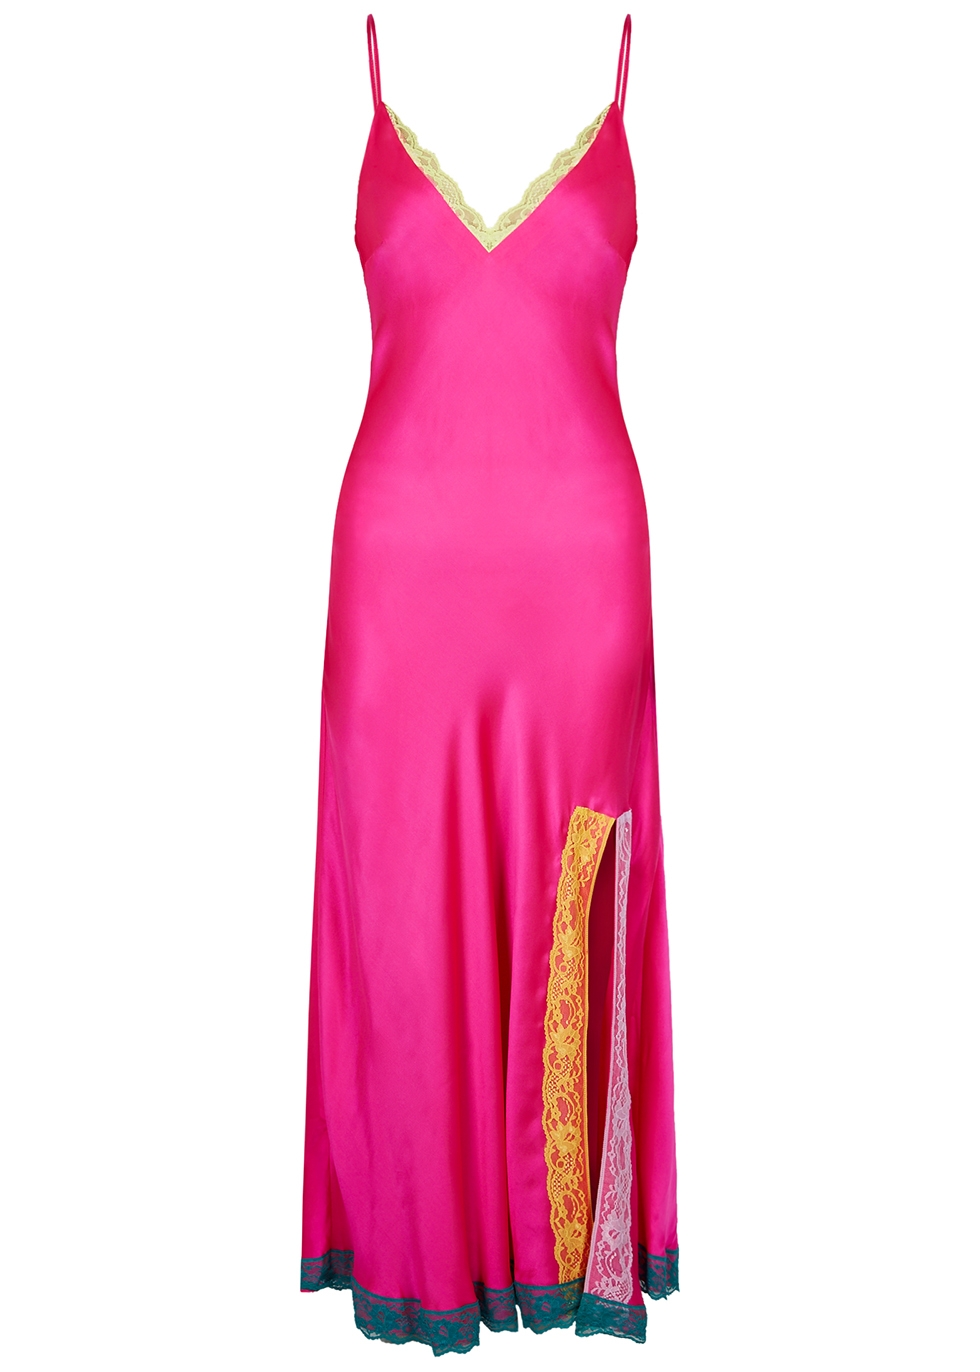 Veronica hot pink silk maxi dress